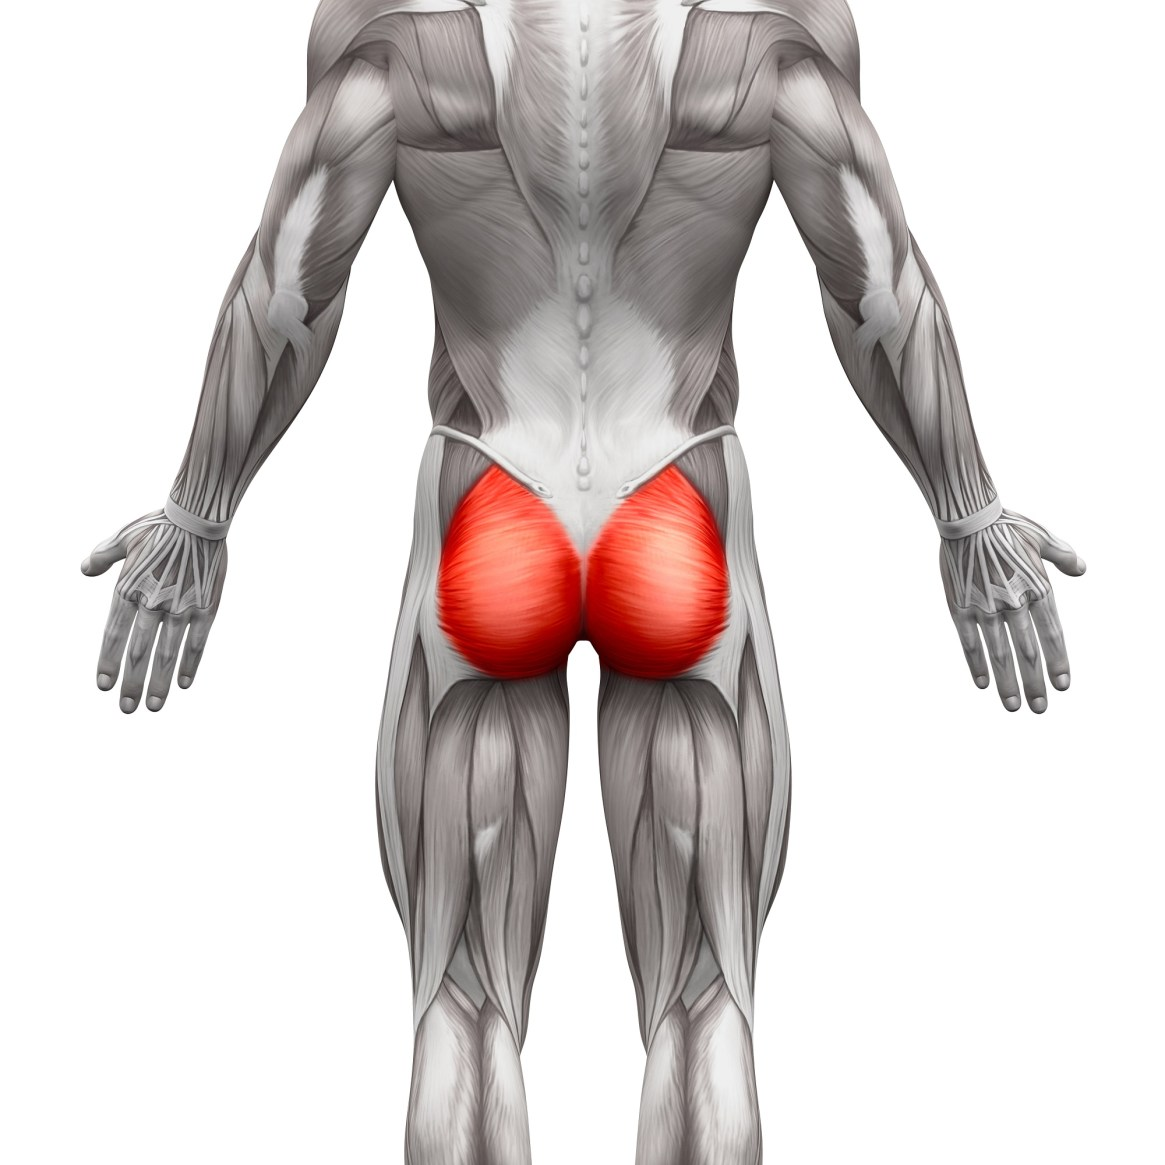 Glutes 101: Anatomy, Function, Basic Exercises